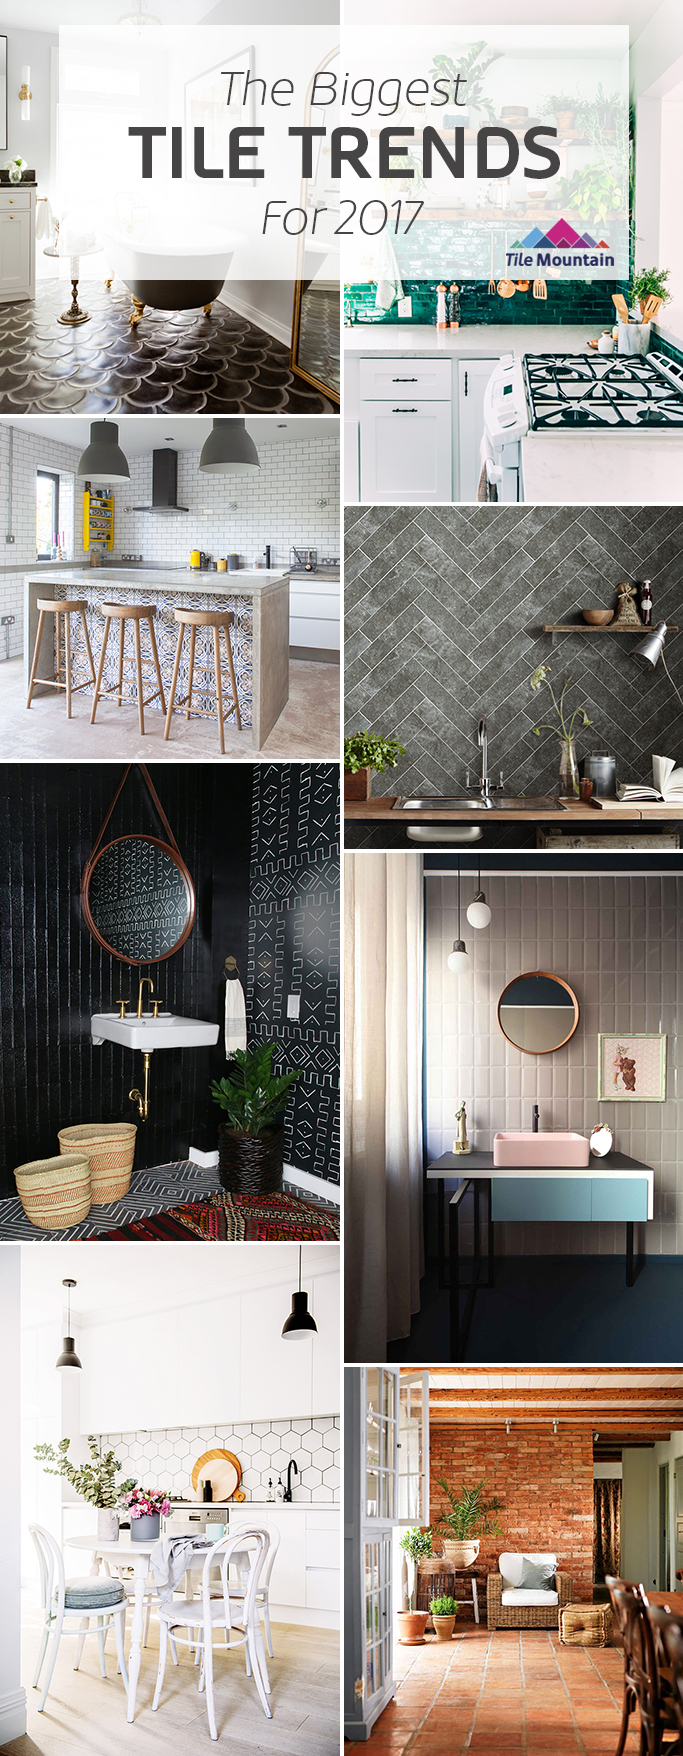 2017 tile trends the experts predict what 39 s next tile for Bathroom tile trends 2016 uk